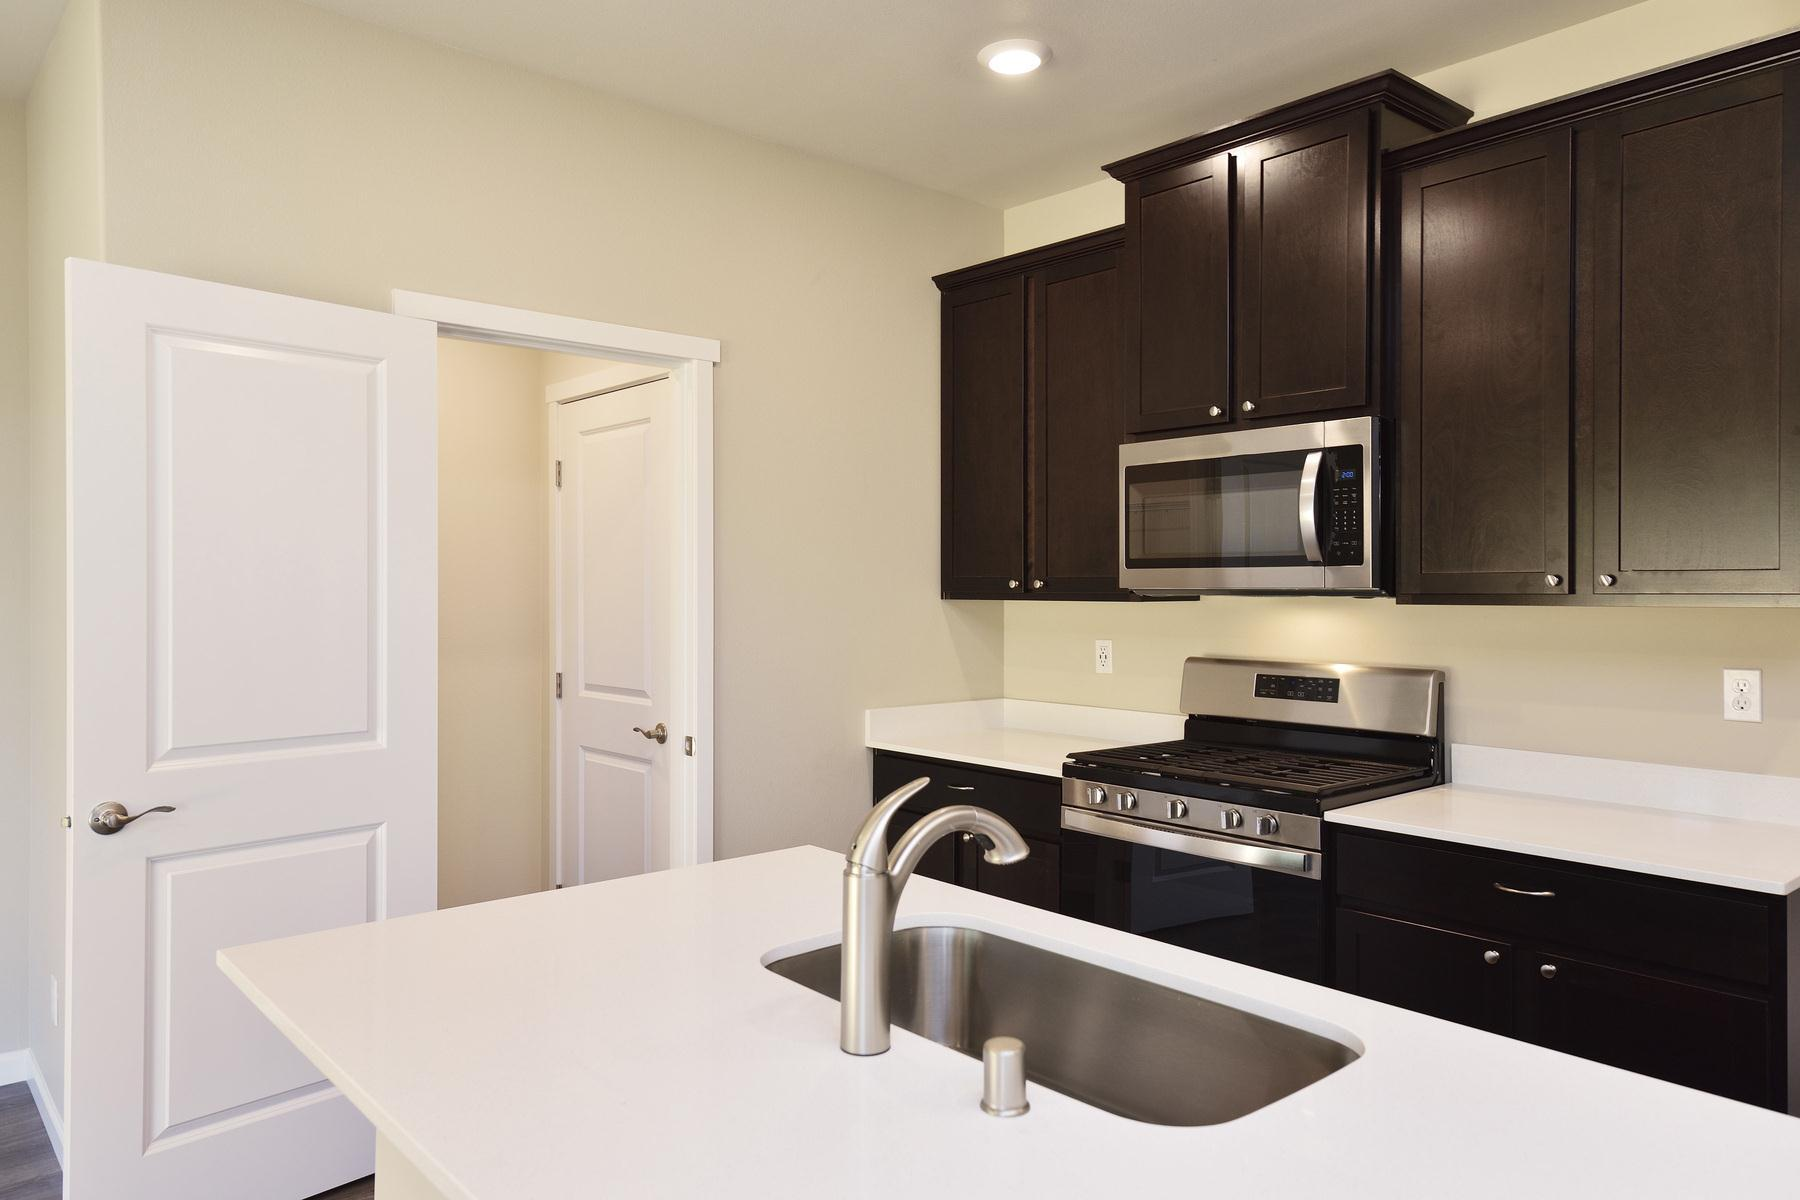 Kitchen featured in the Hawthorn By LGI Homes in Bremerton, WA